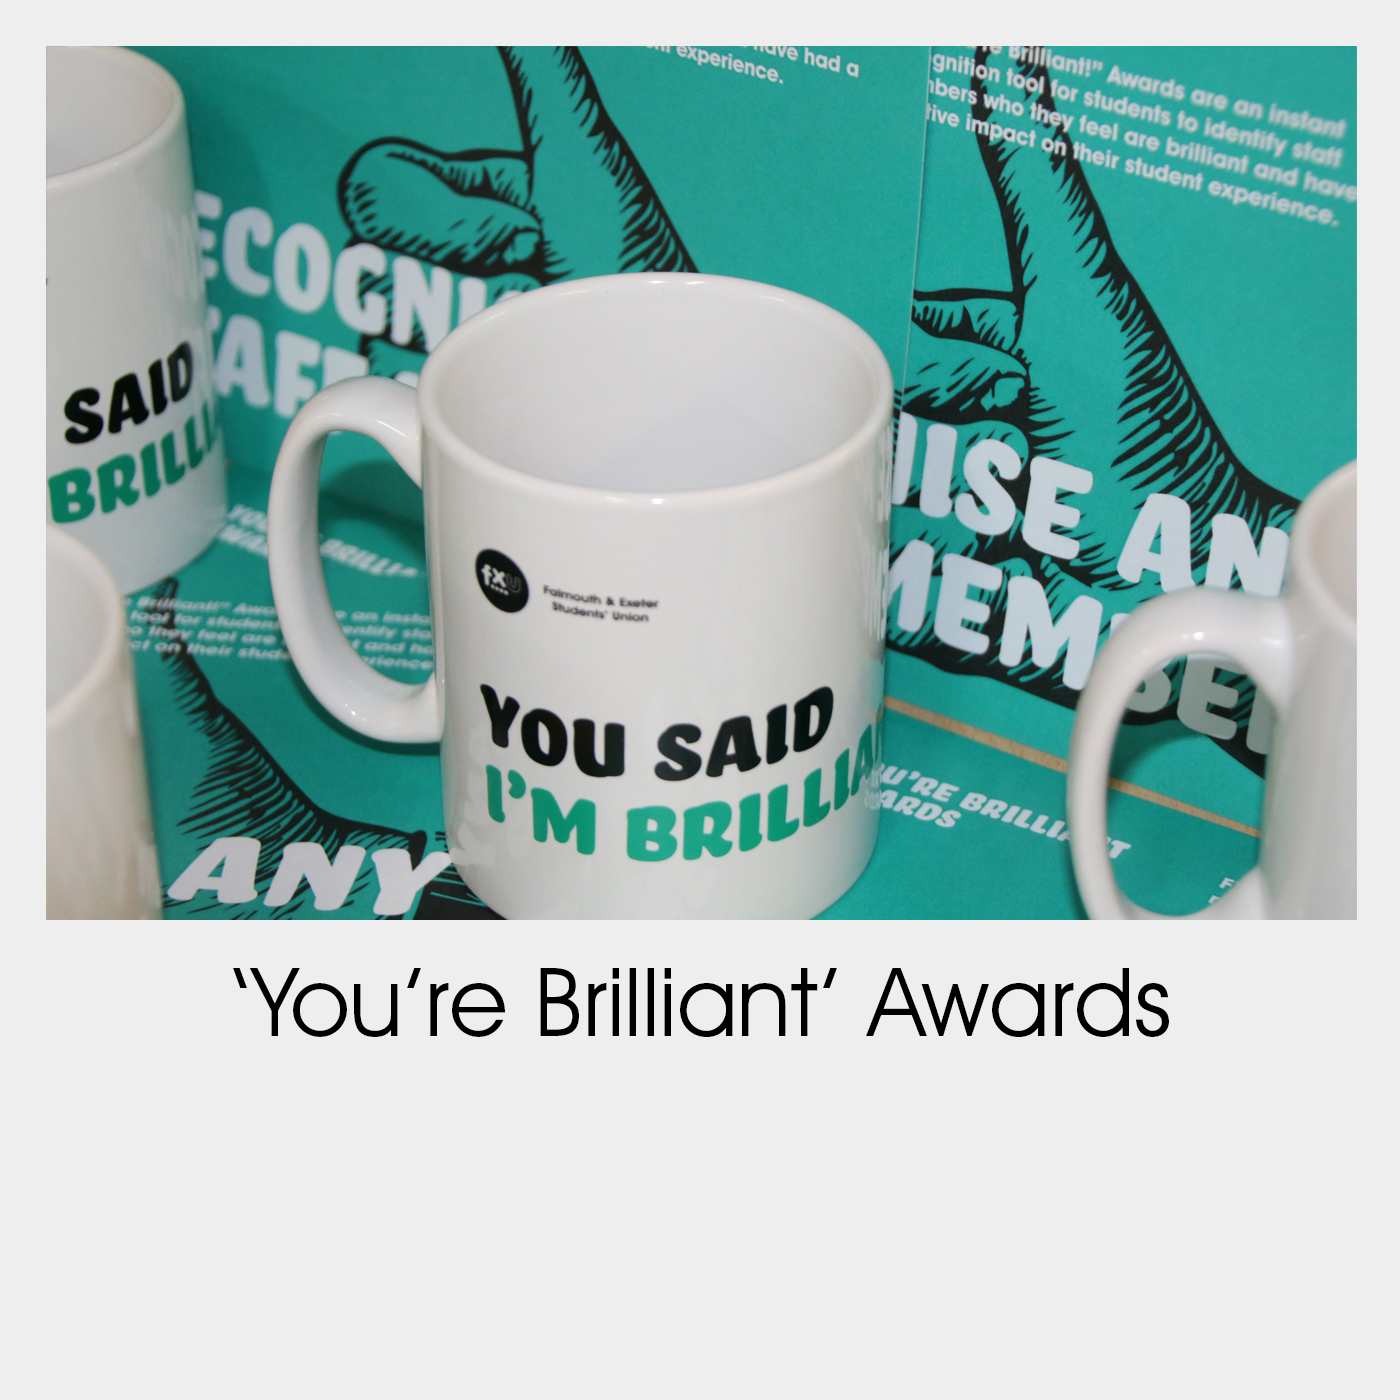 Your're Brilliant Awards